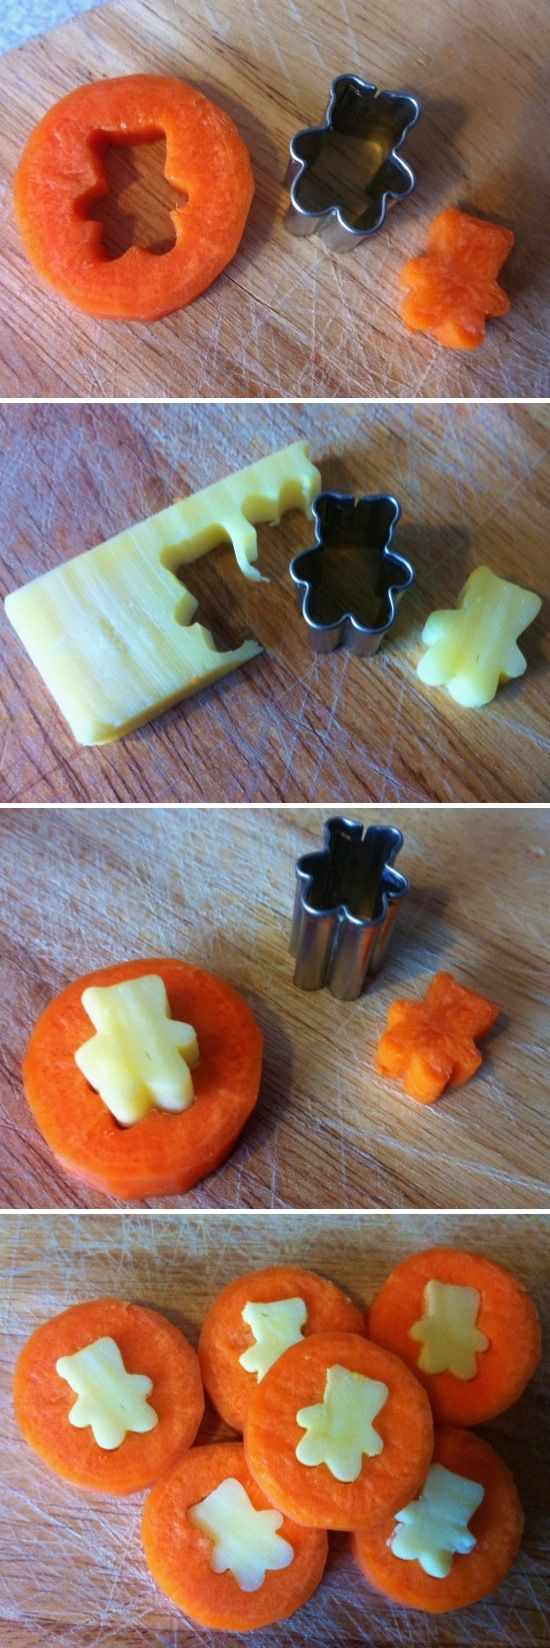 Cookie Cutters11